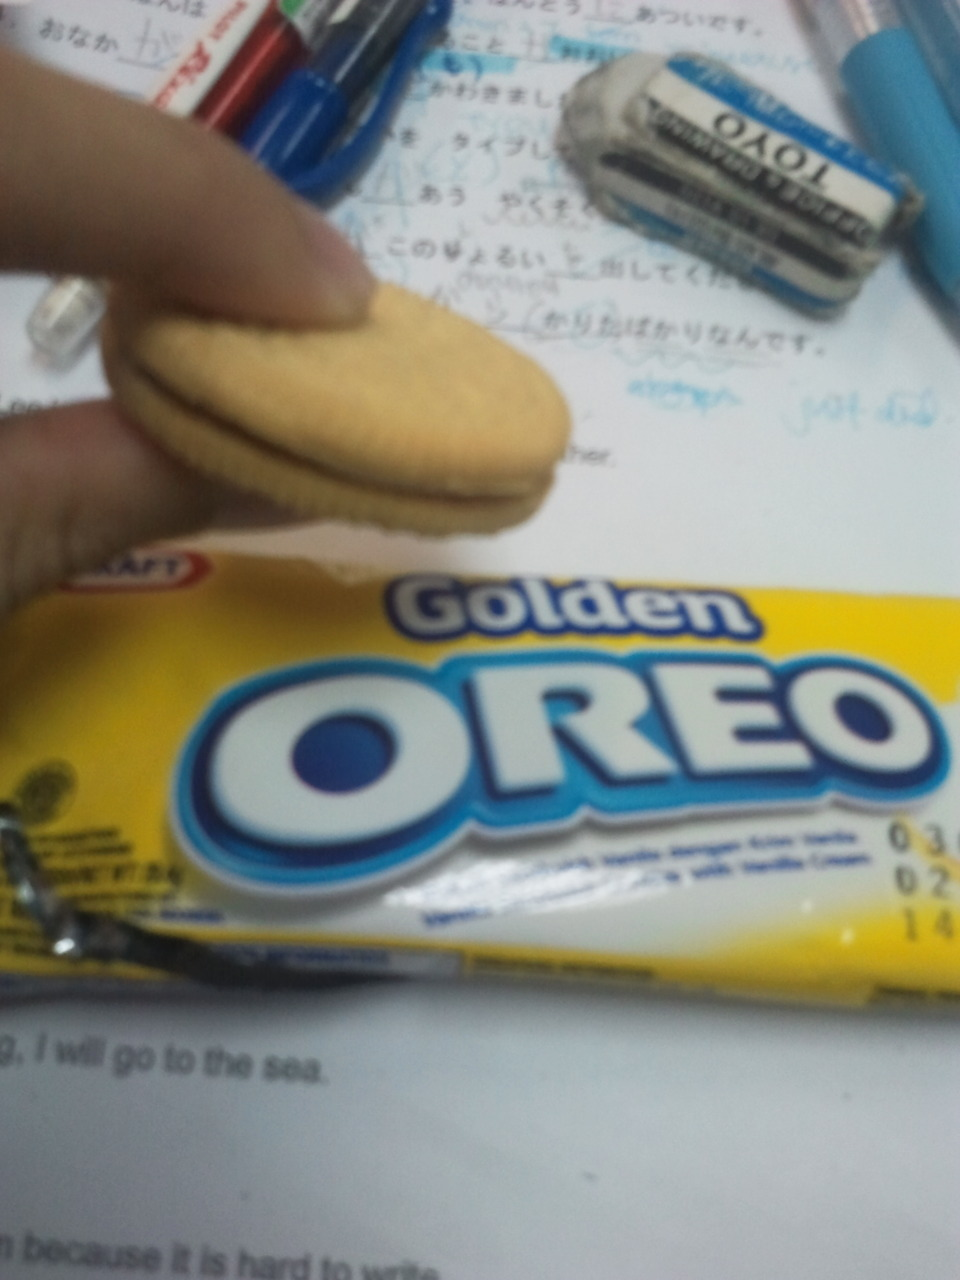 Golden OreoMy friend Sherry from my Japanese class gave me these cookies today!!!~~I originally thought they were cheese oreos and was like o_o but they are actually Vanilla Cookie Sandwiches with Vanilla cream!!! Verdict: NOMNOM AM GOING TO BUY A BOX FOR MYSELF ^_^